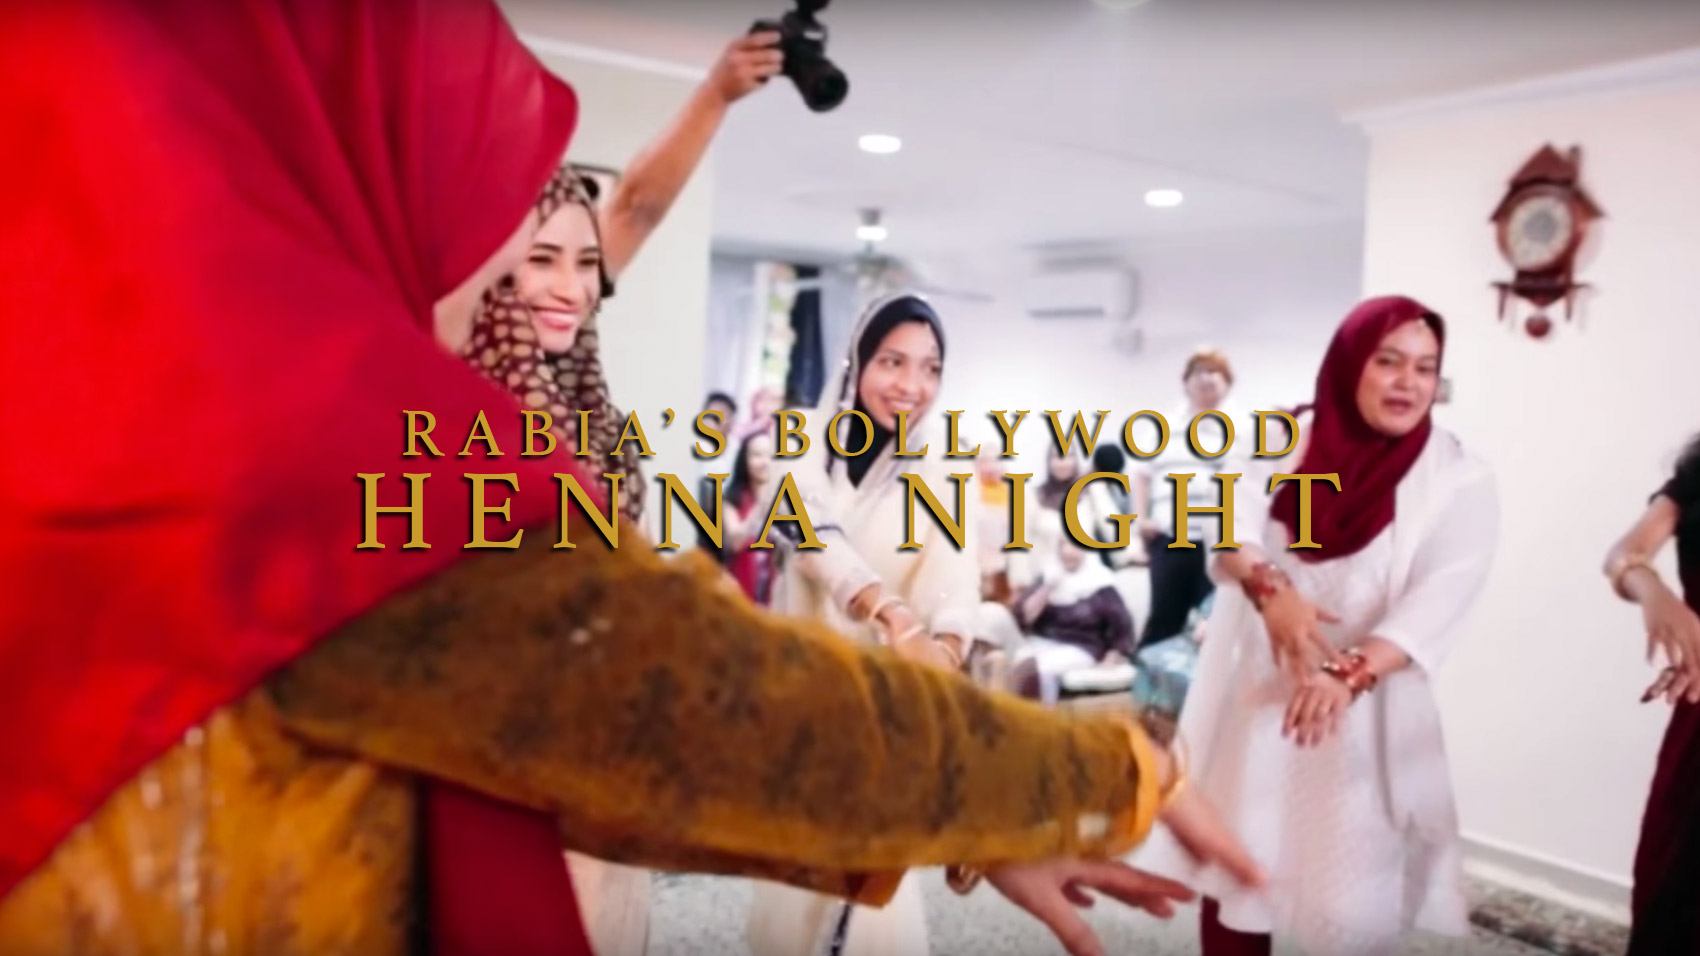 Rabia's Bollywood Henna Night by Top Wedding Videographer Malaysia, Kaio Studio